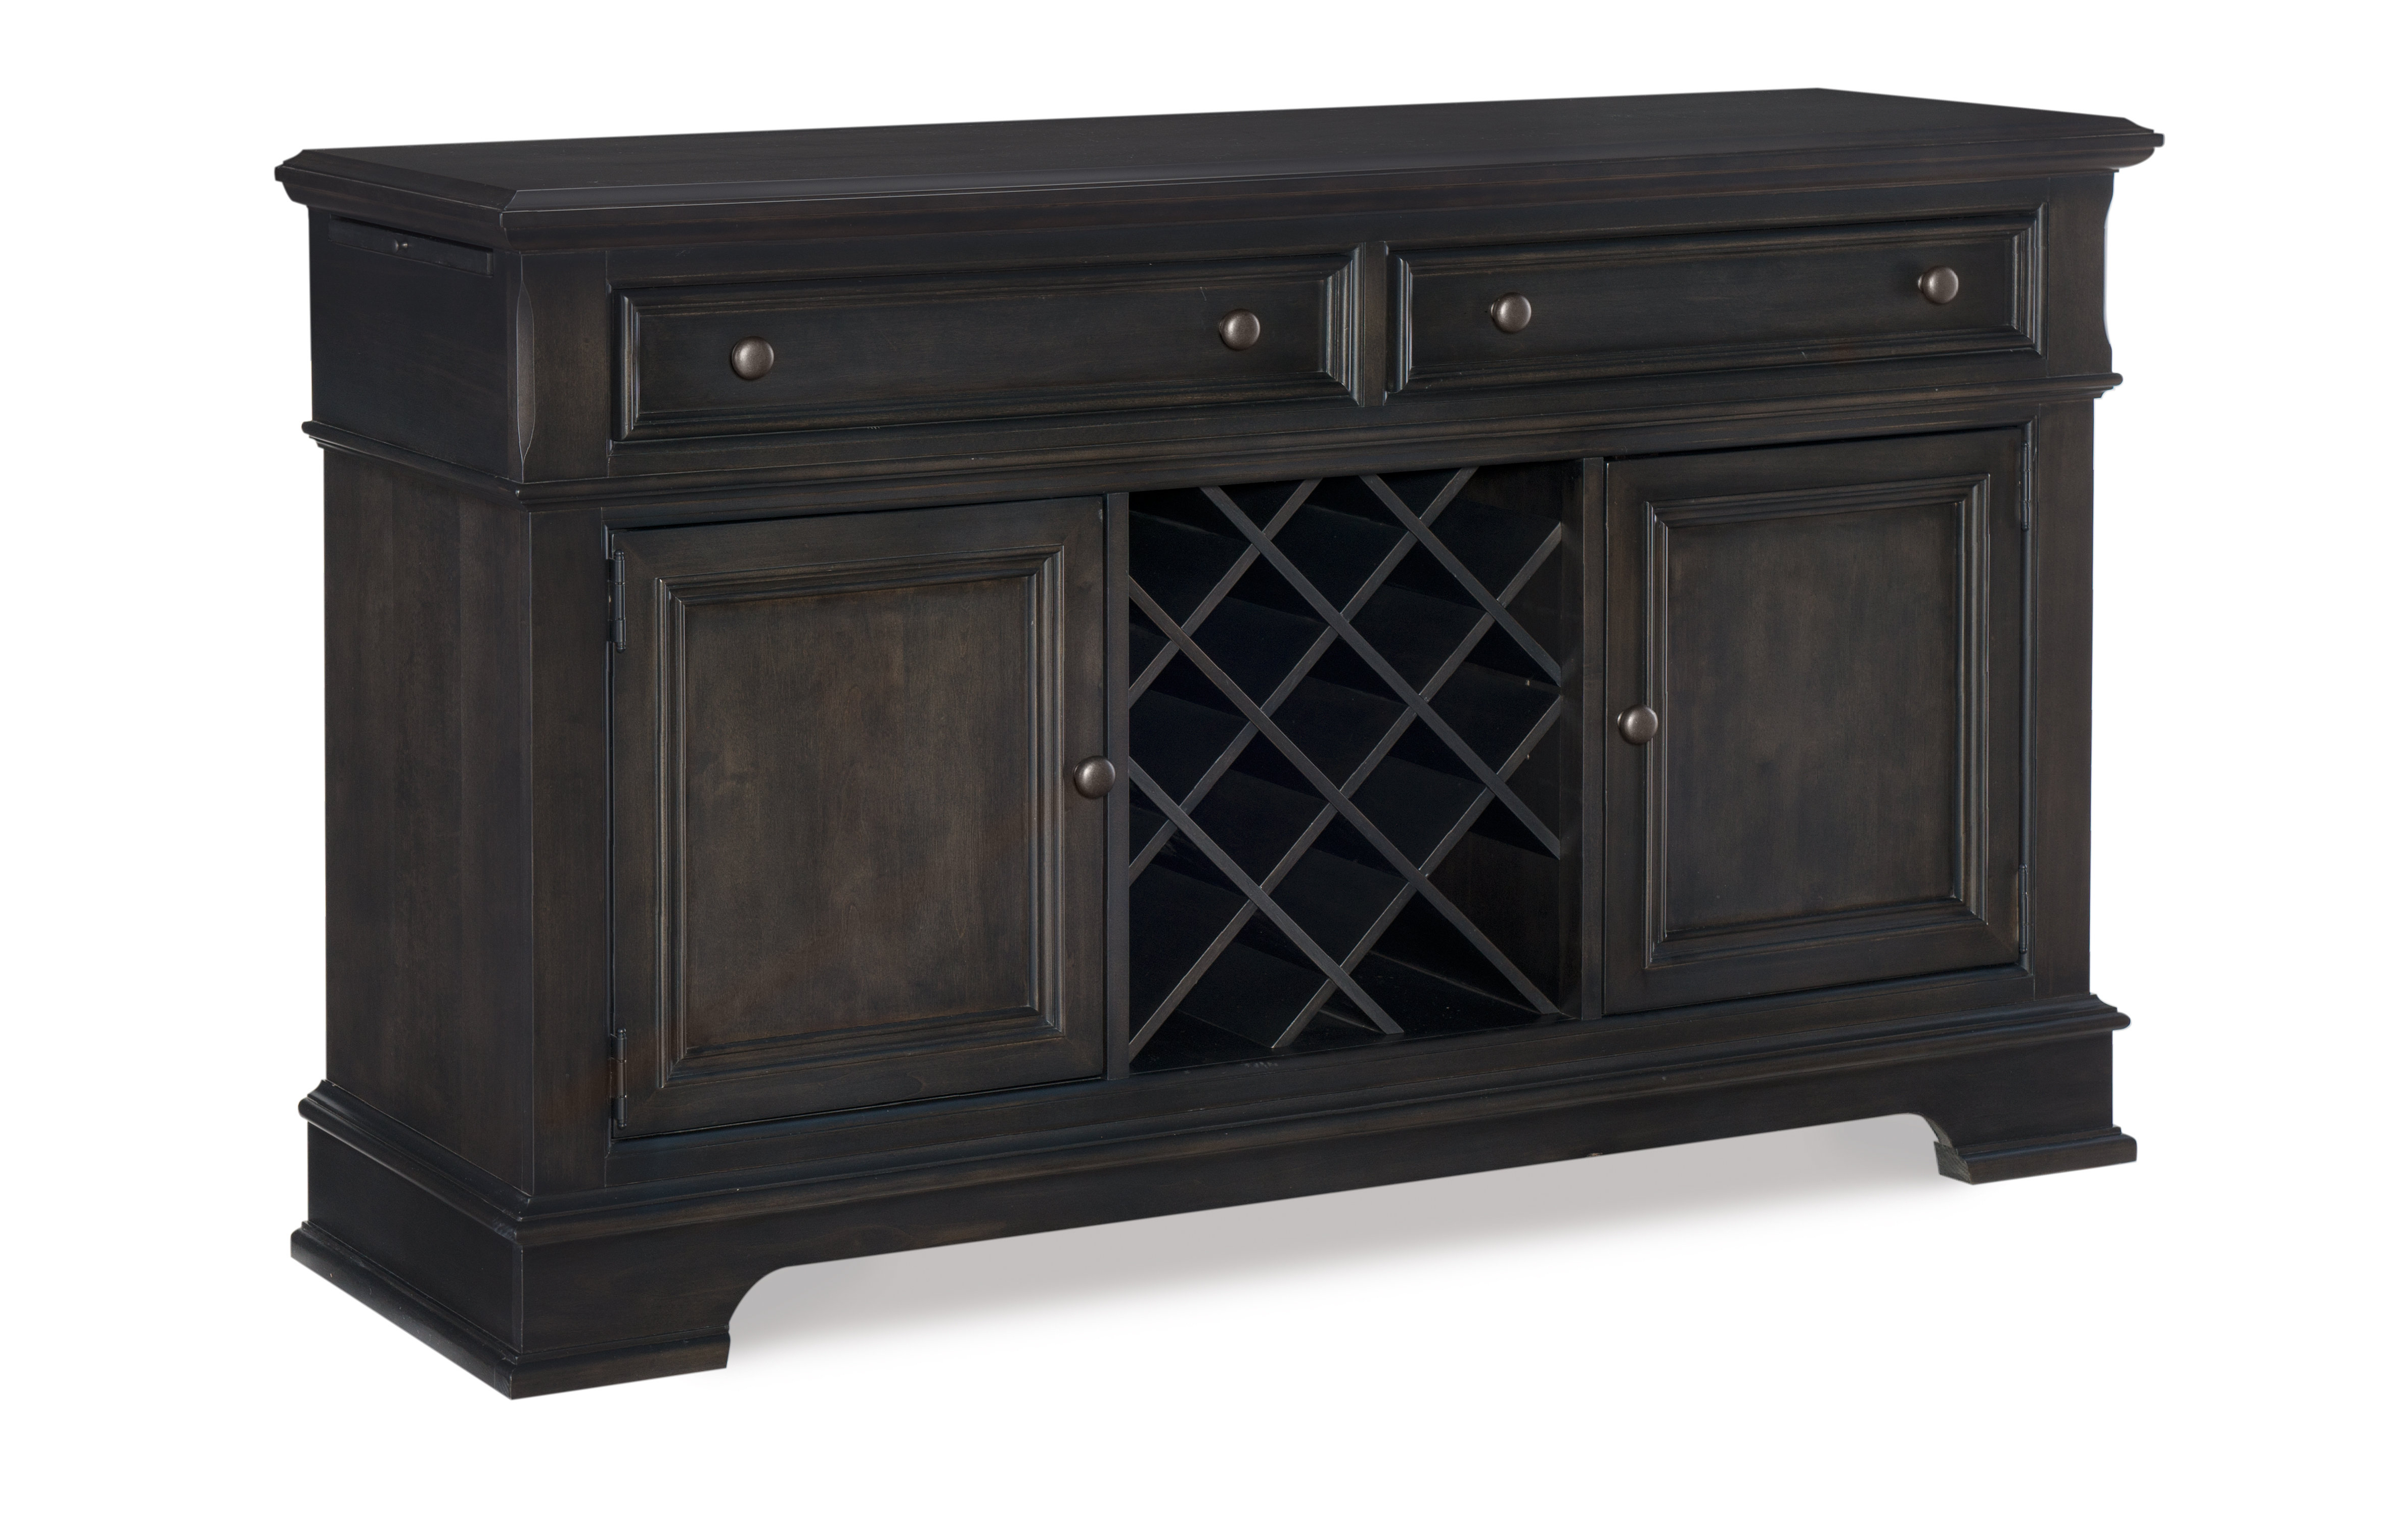 Earley Credenza Throughout Well Known Adelbert Credenzas (Gallery 12 of 20)